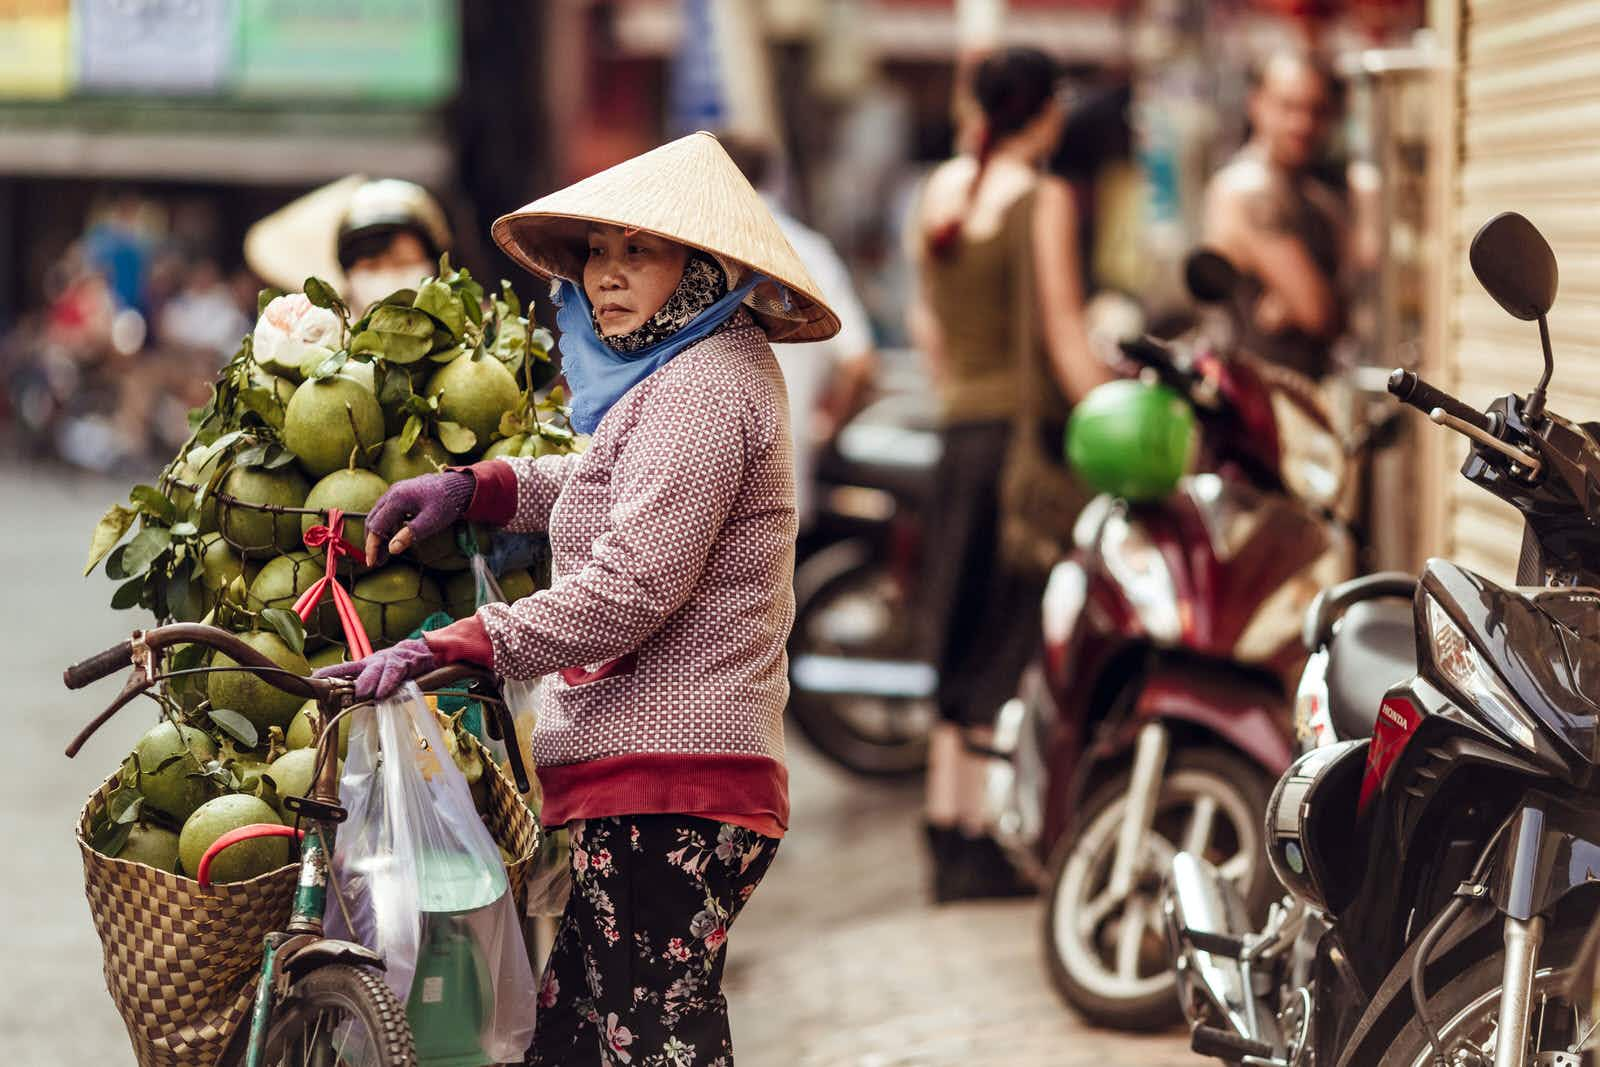 A Vietnamese woman in a conical hat sells fresh green coconuts on the street of Ho Chi Minh city in Vietnam,